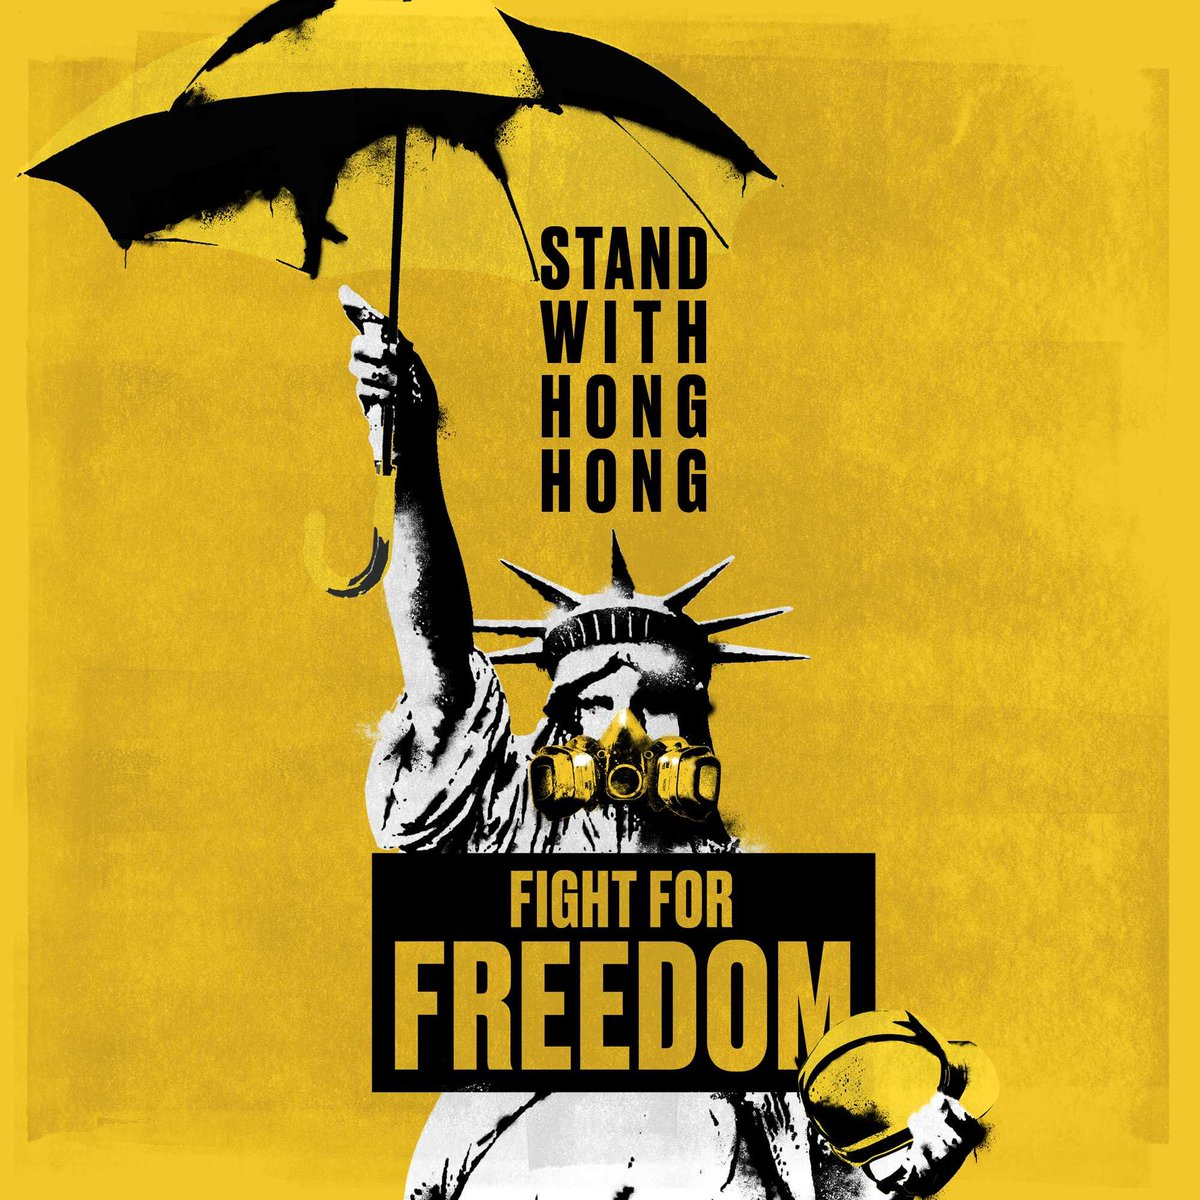 Our kids are fighting for their future, how can we ignore them Join #HongKong Fight for Democracy, Freedom and Human Right ✊🏼🇭🇰#FreeHongKong#FightForFreedom #StandWithHongKong #HongKongProtest#929GlobalAntiTotalitarianism#929GlobalMarch#929GlobalAntiTotalitarianCCP